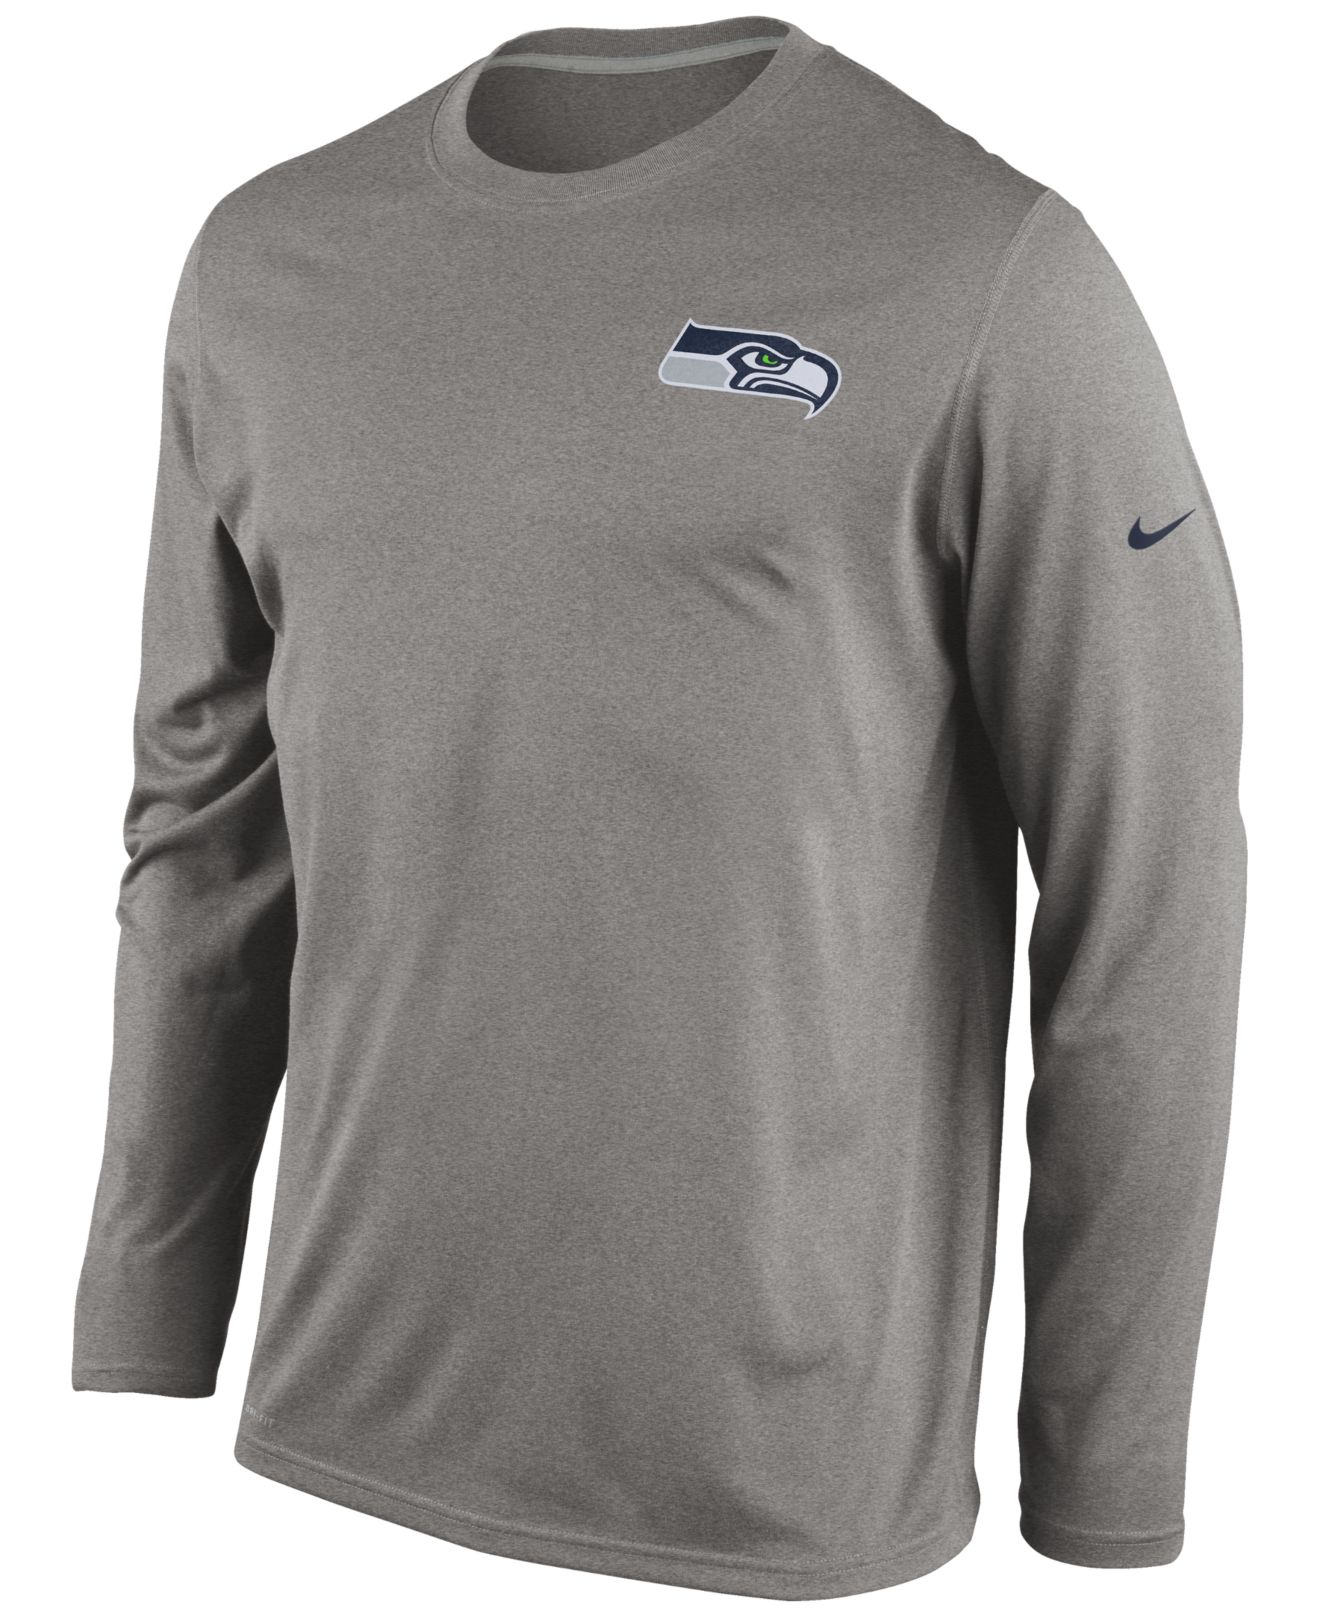 e59f9461eda135 ... authentic lyst nike mens long sleeve seattle seahawks dri fit t shirt  in de589 2c3fc